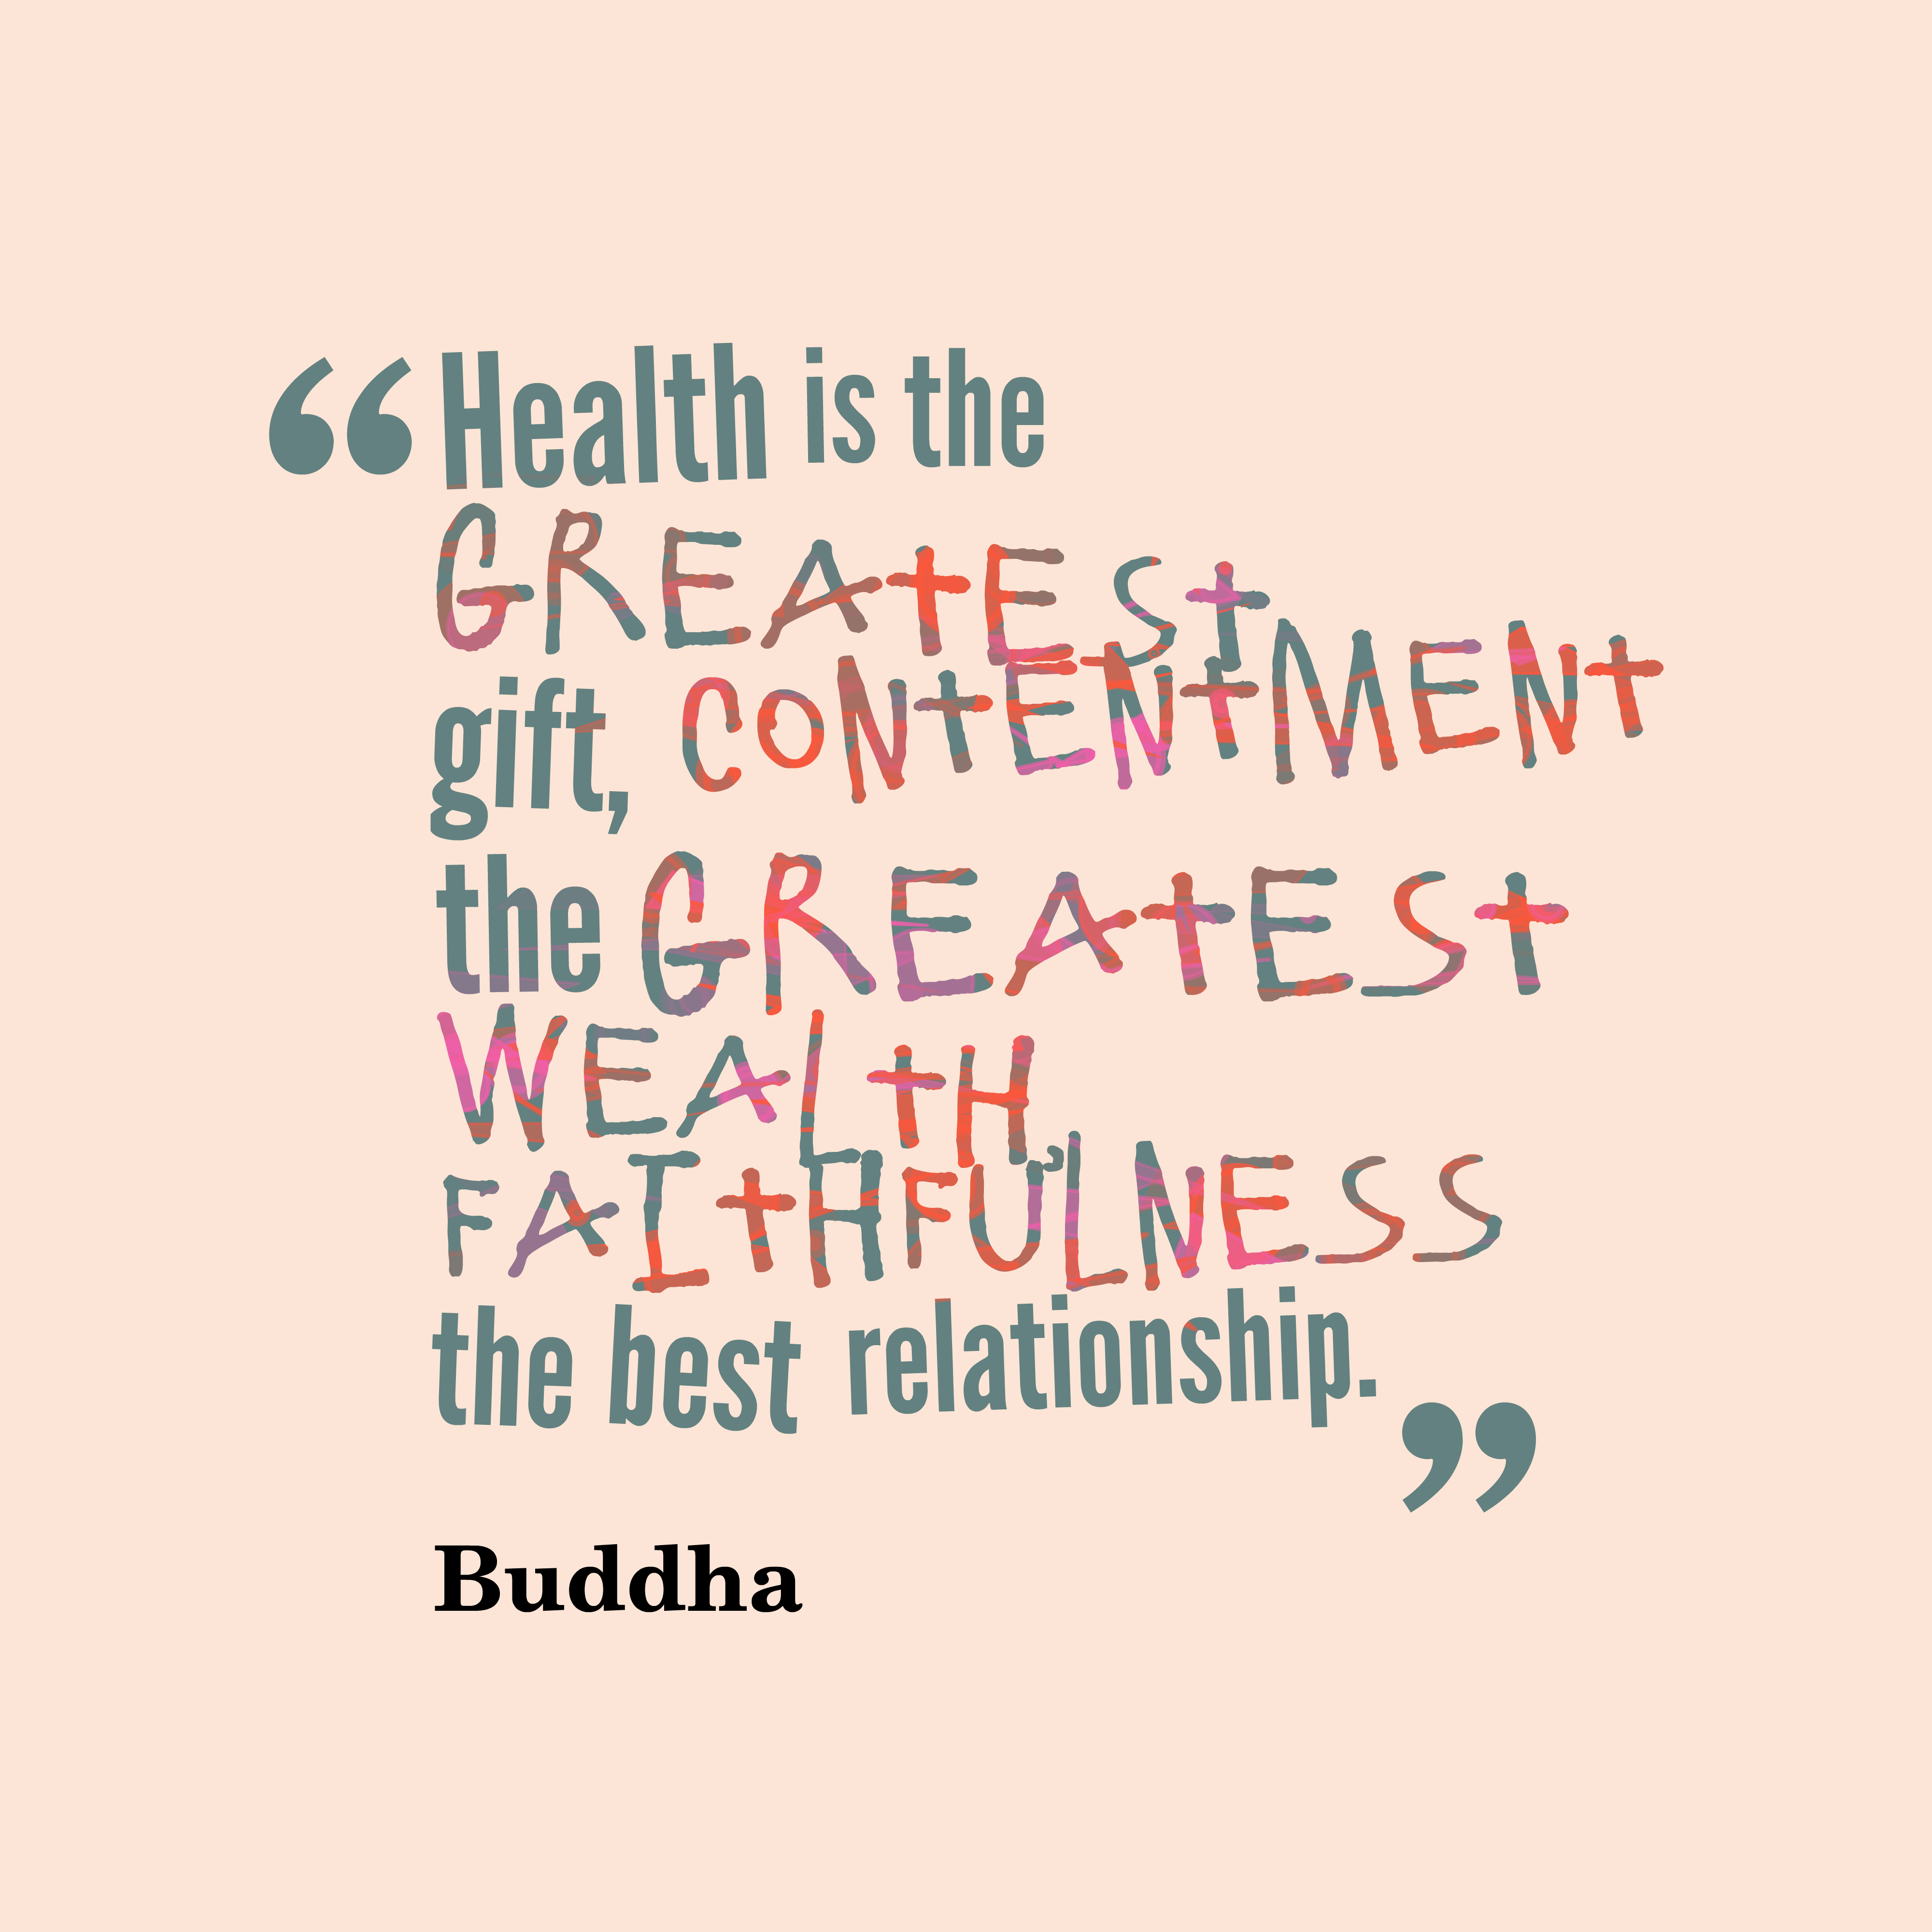 Picture Buddha quote about relationship. - 652.4KB